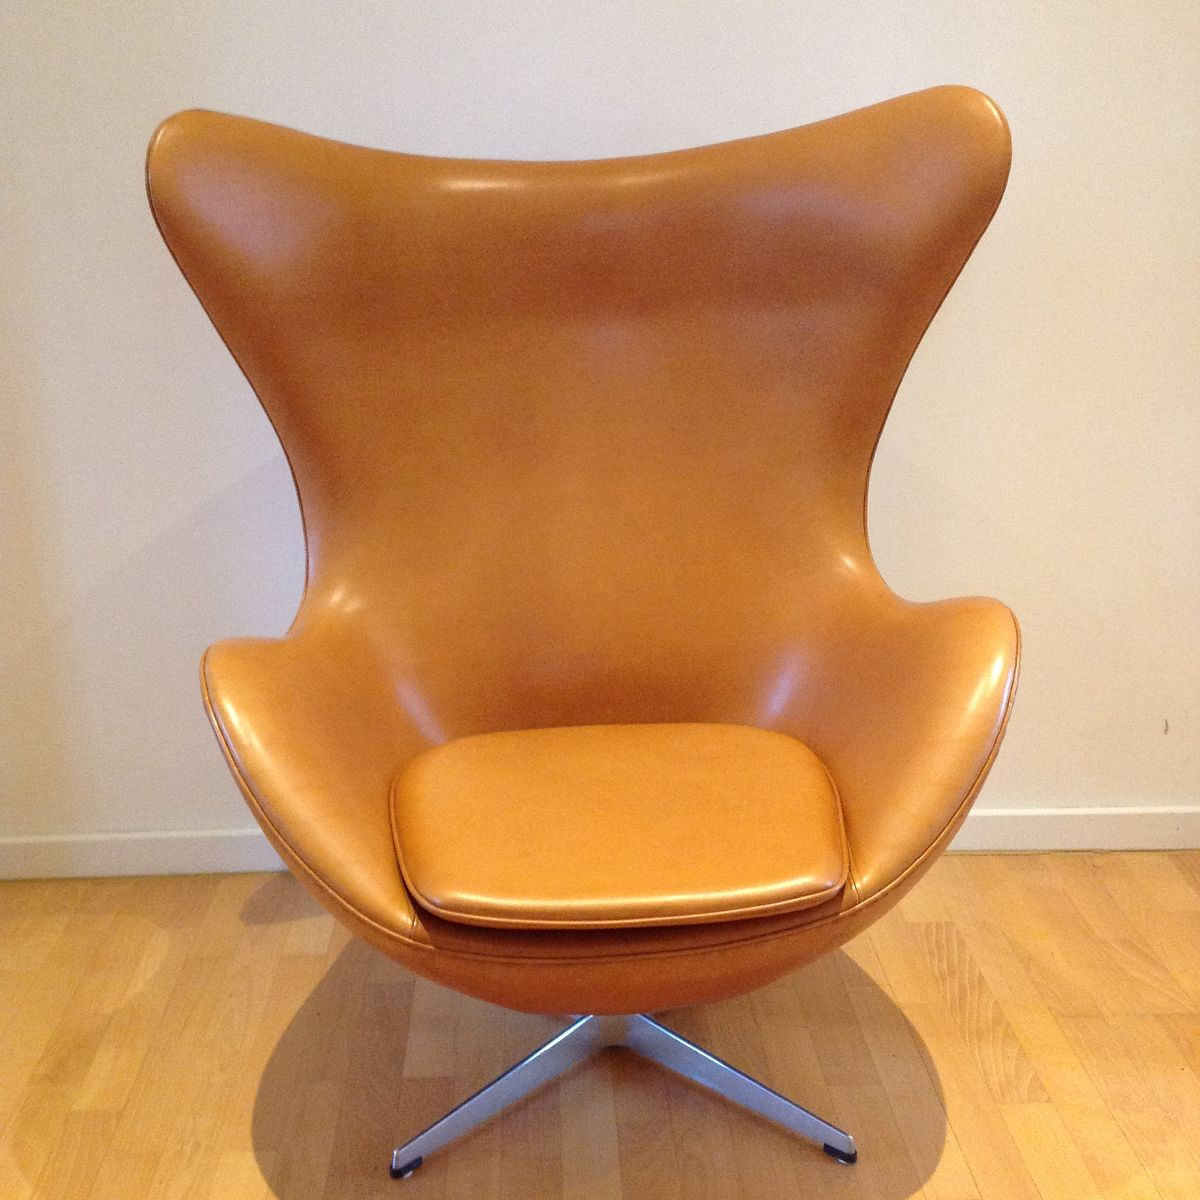 3316 the egg lounge chair by arne jacobsen for fritz for Sessel jacobsen